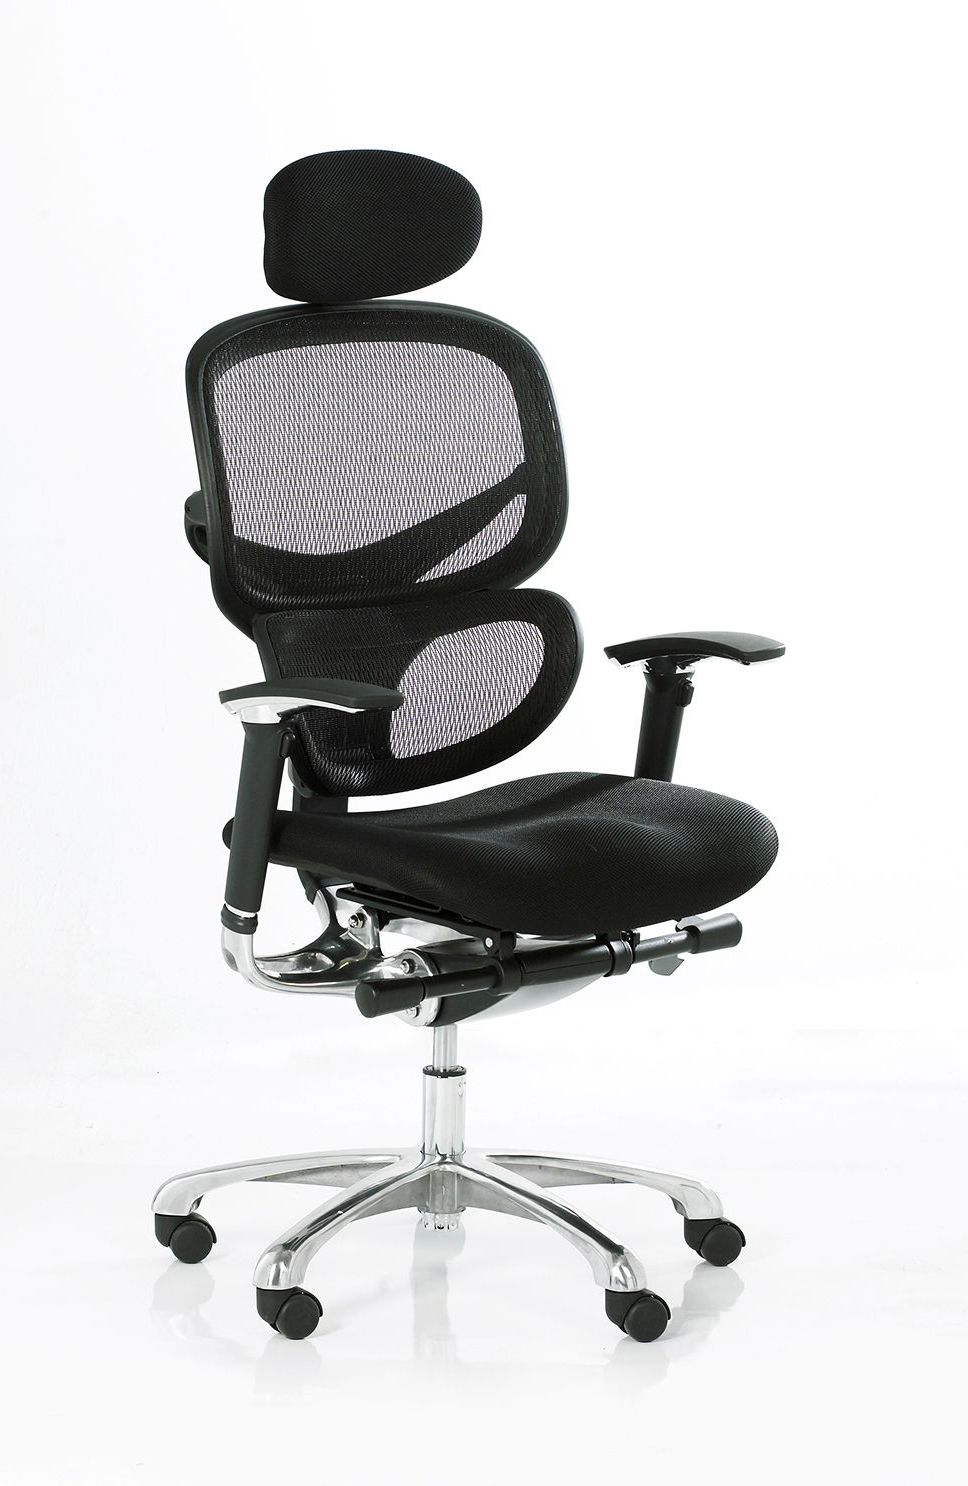 WAVE-Air-Mesh-Seat-3-qtr-cc